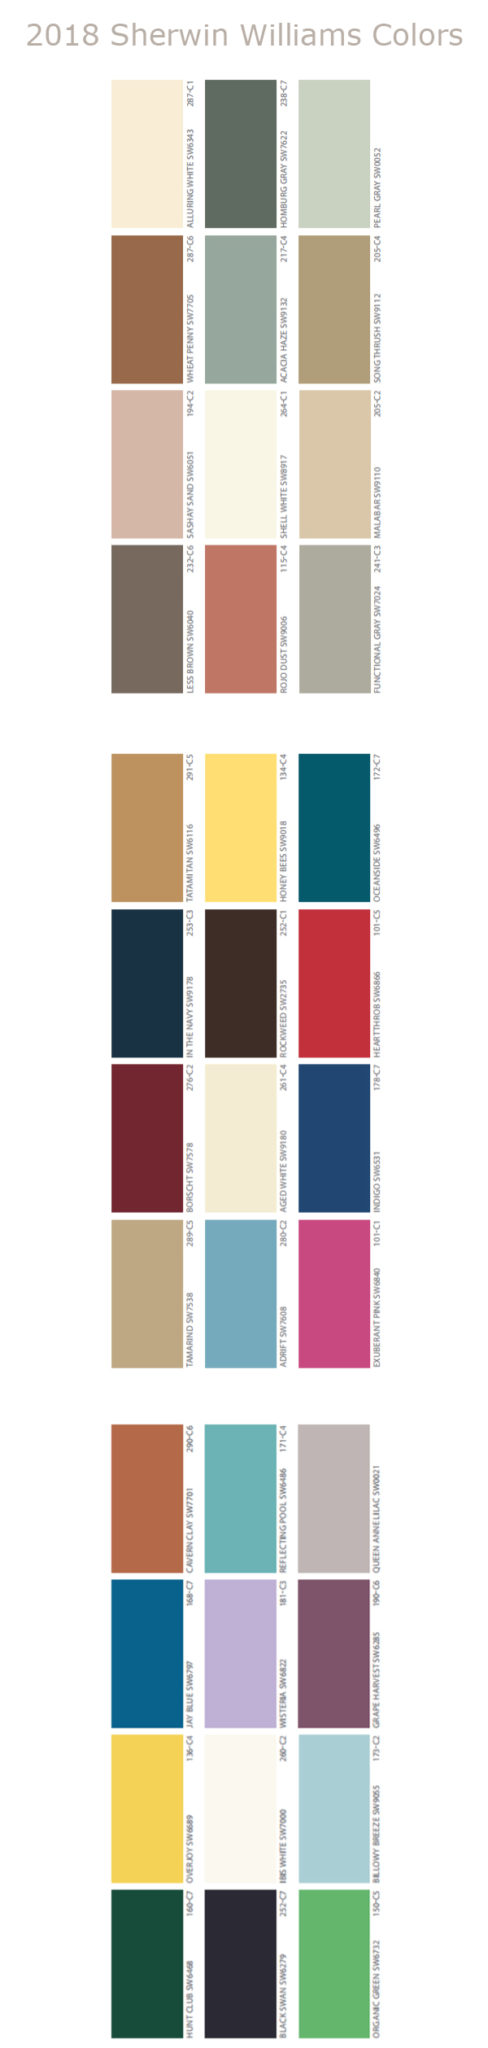 Sherwin Williams 2017 Paint Colors Sherwin Williams